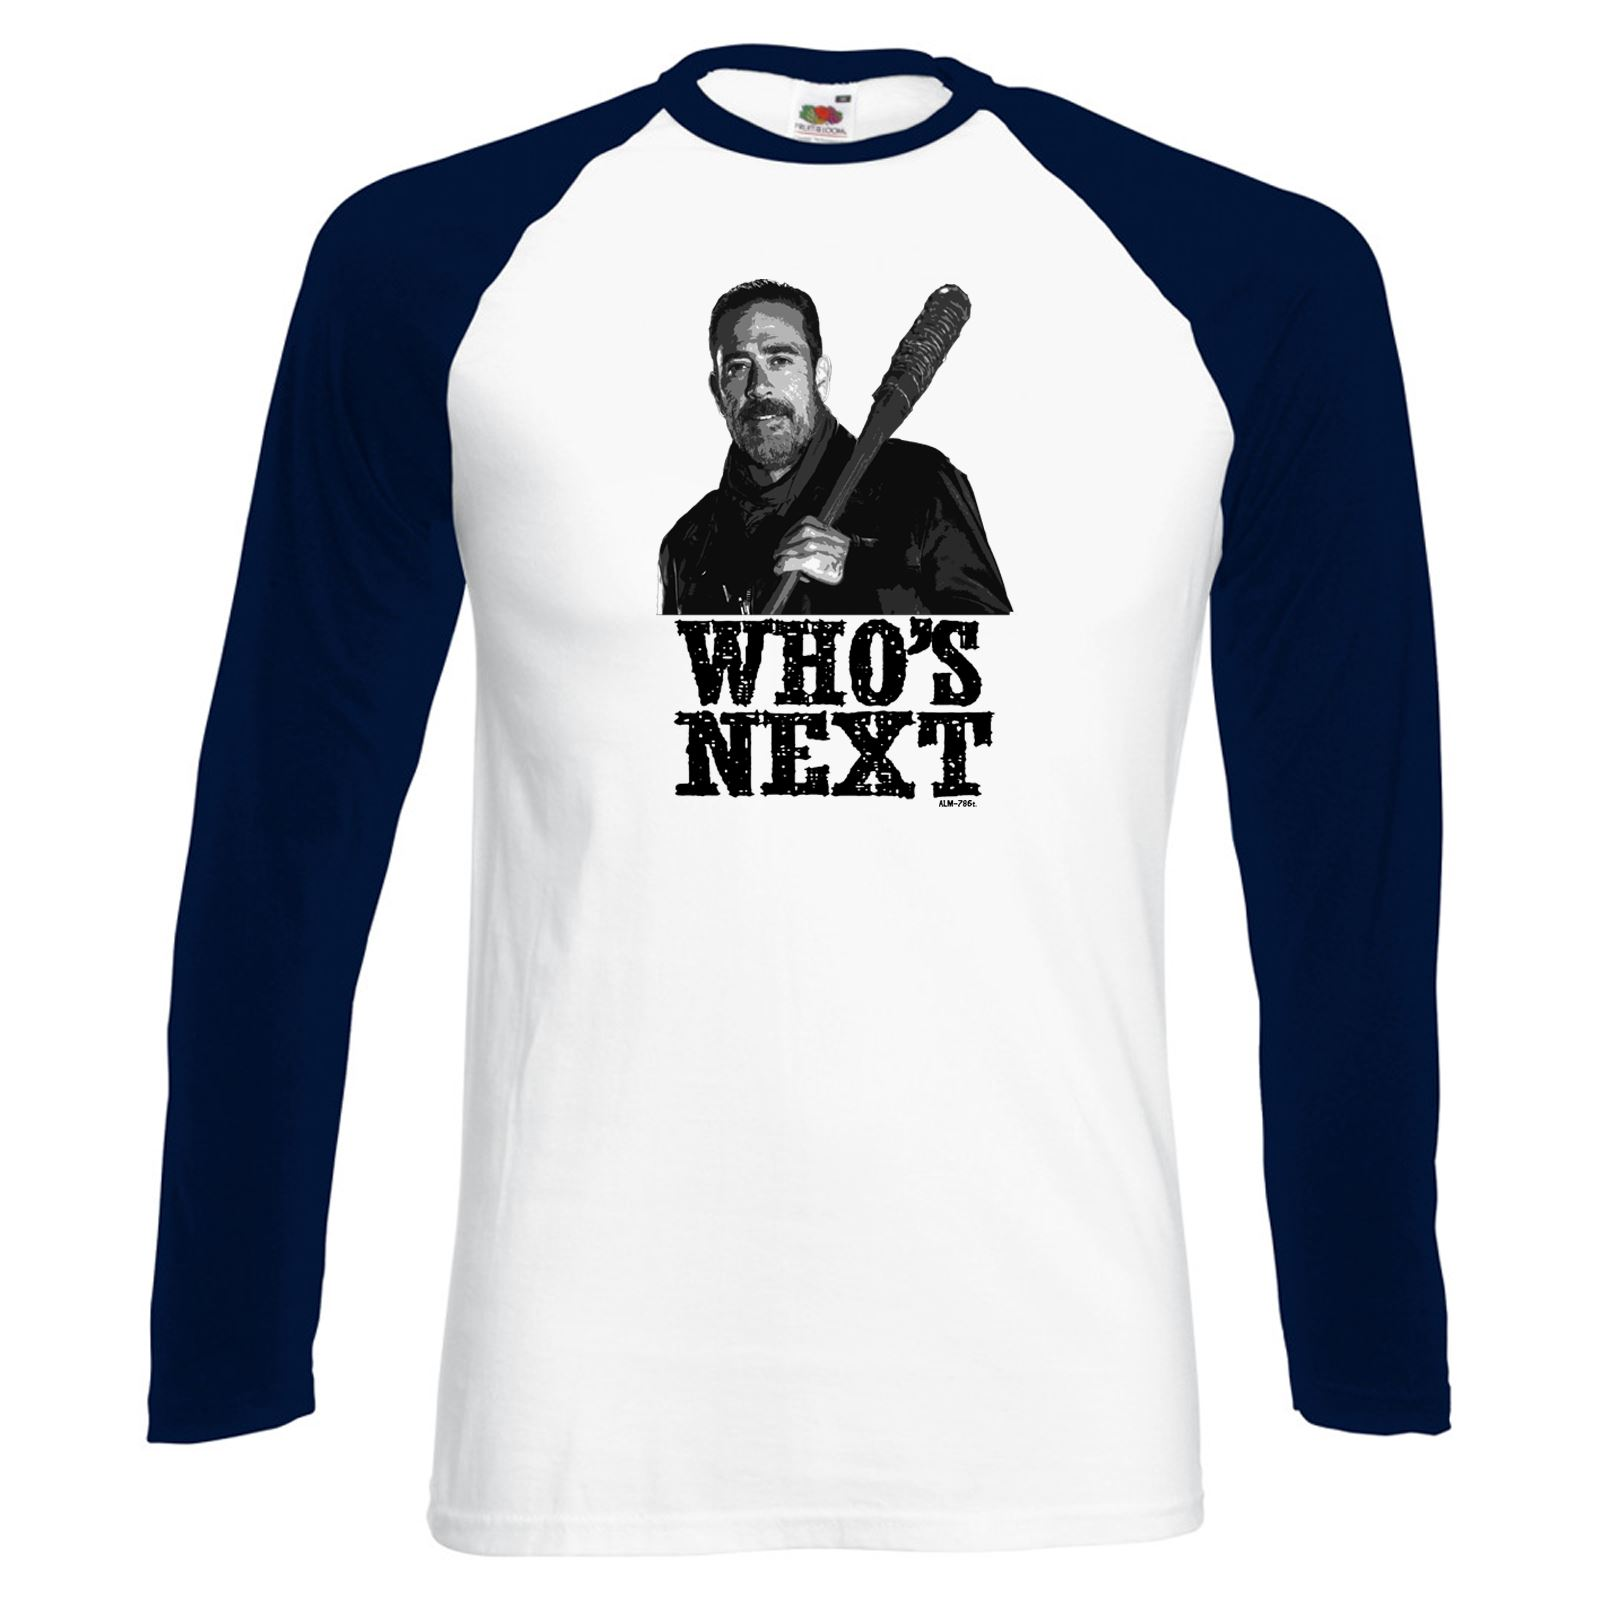 Alm786t Mens Funny T Shirts Who 39 S Next Negan Walking Dead